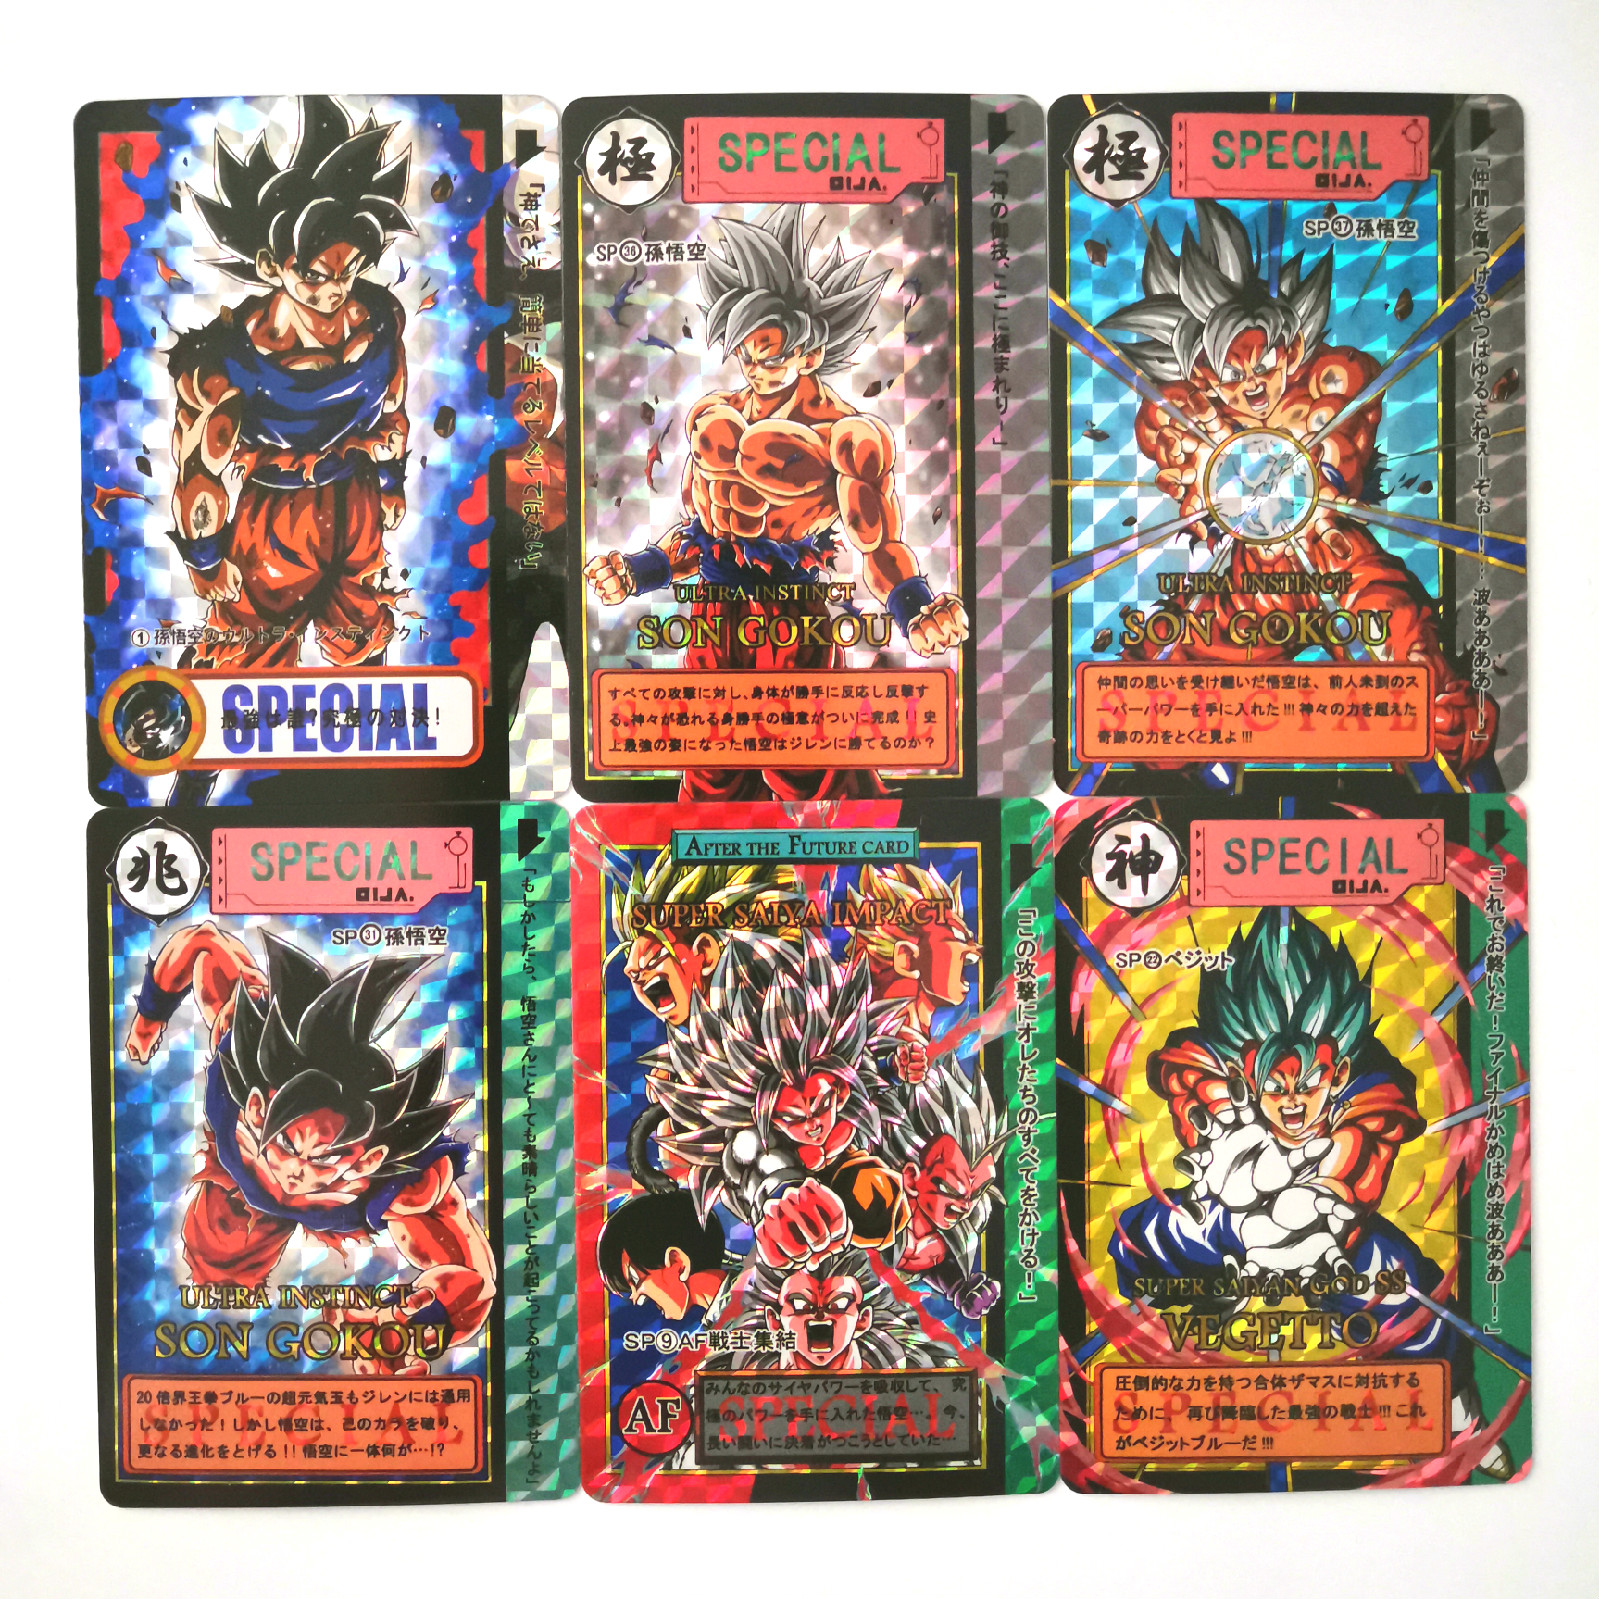 43pcs/set Super Dragon Ball Limit Breakthrough Heroes Battle Card Ultra Instinct Goku Game Collection Cards